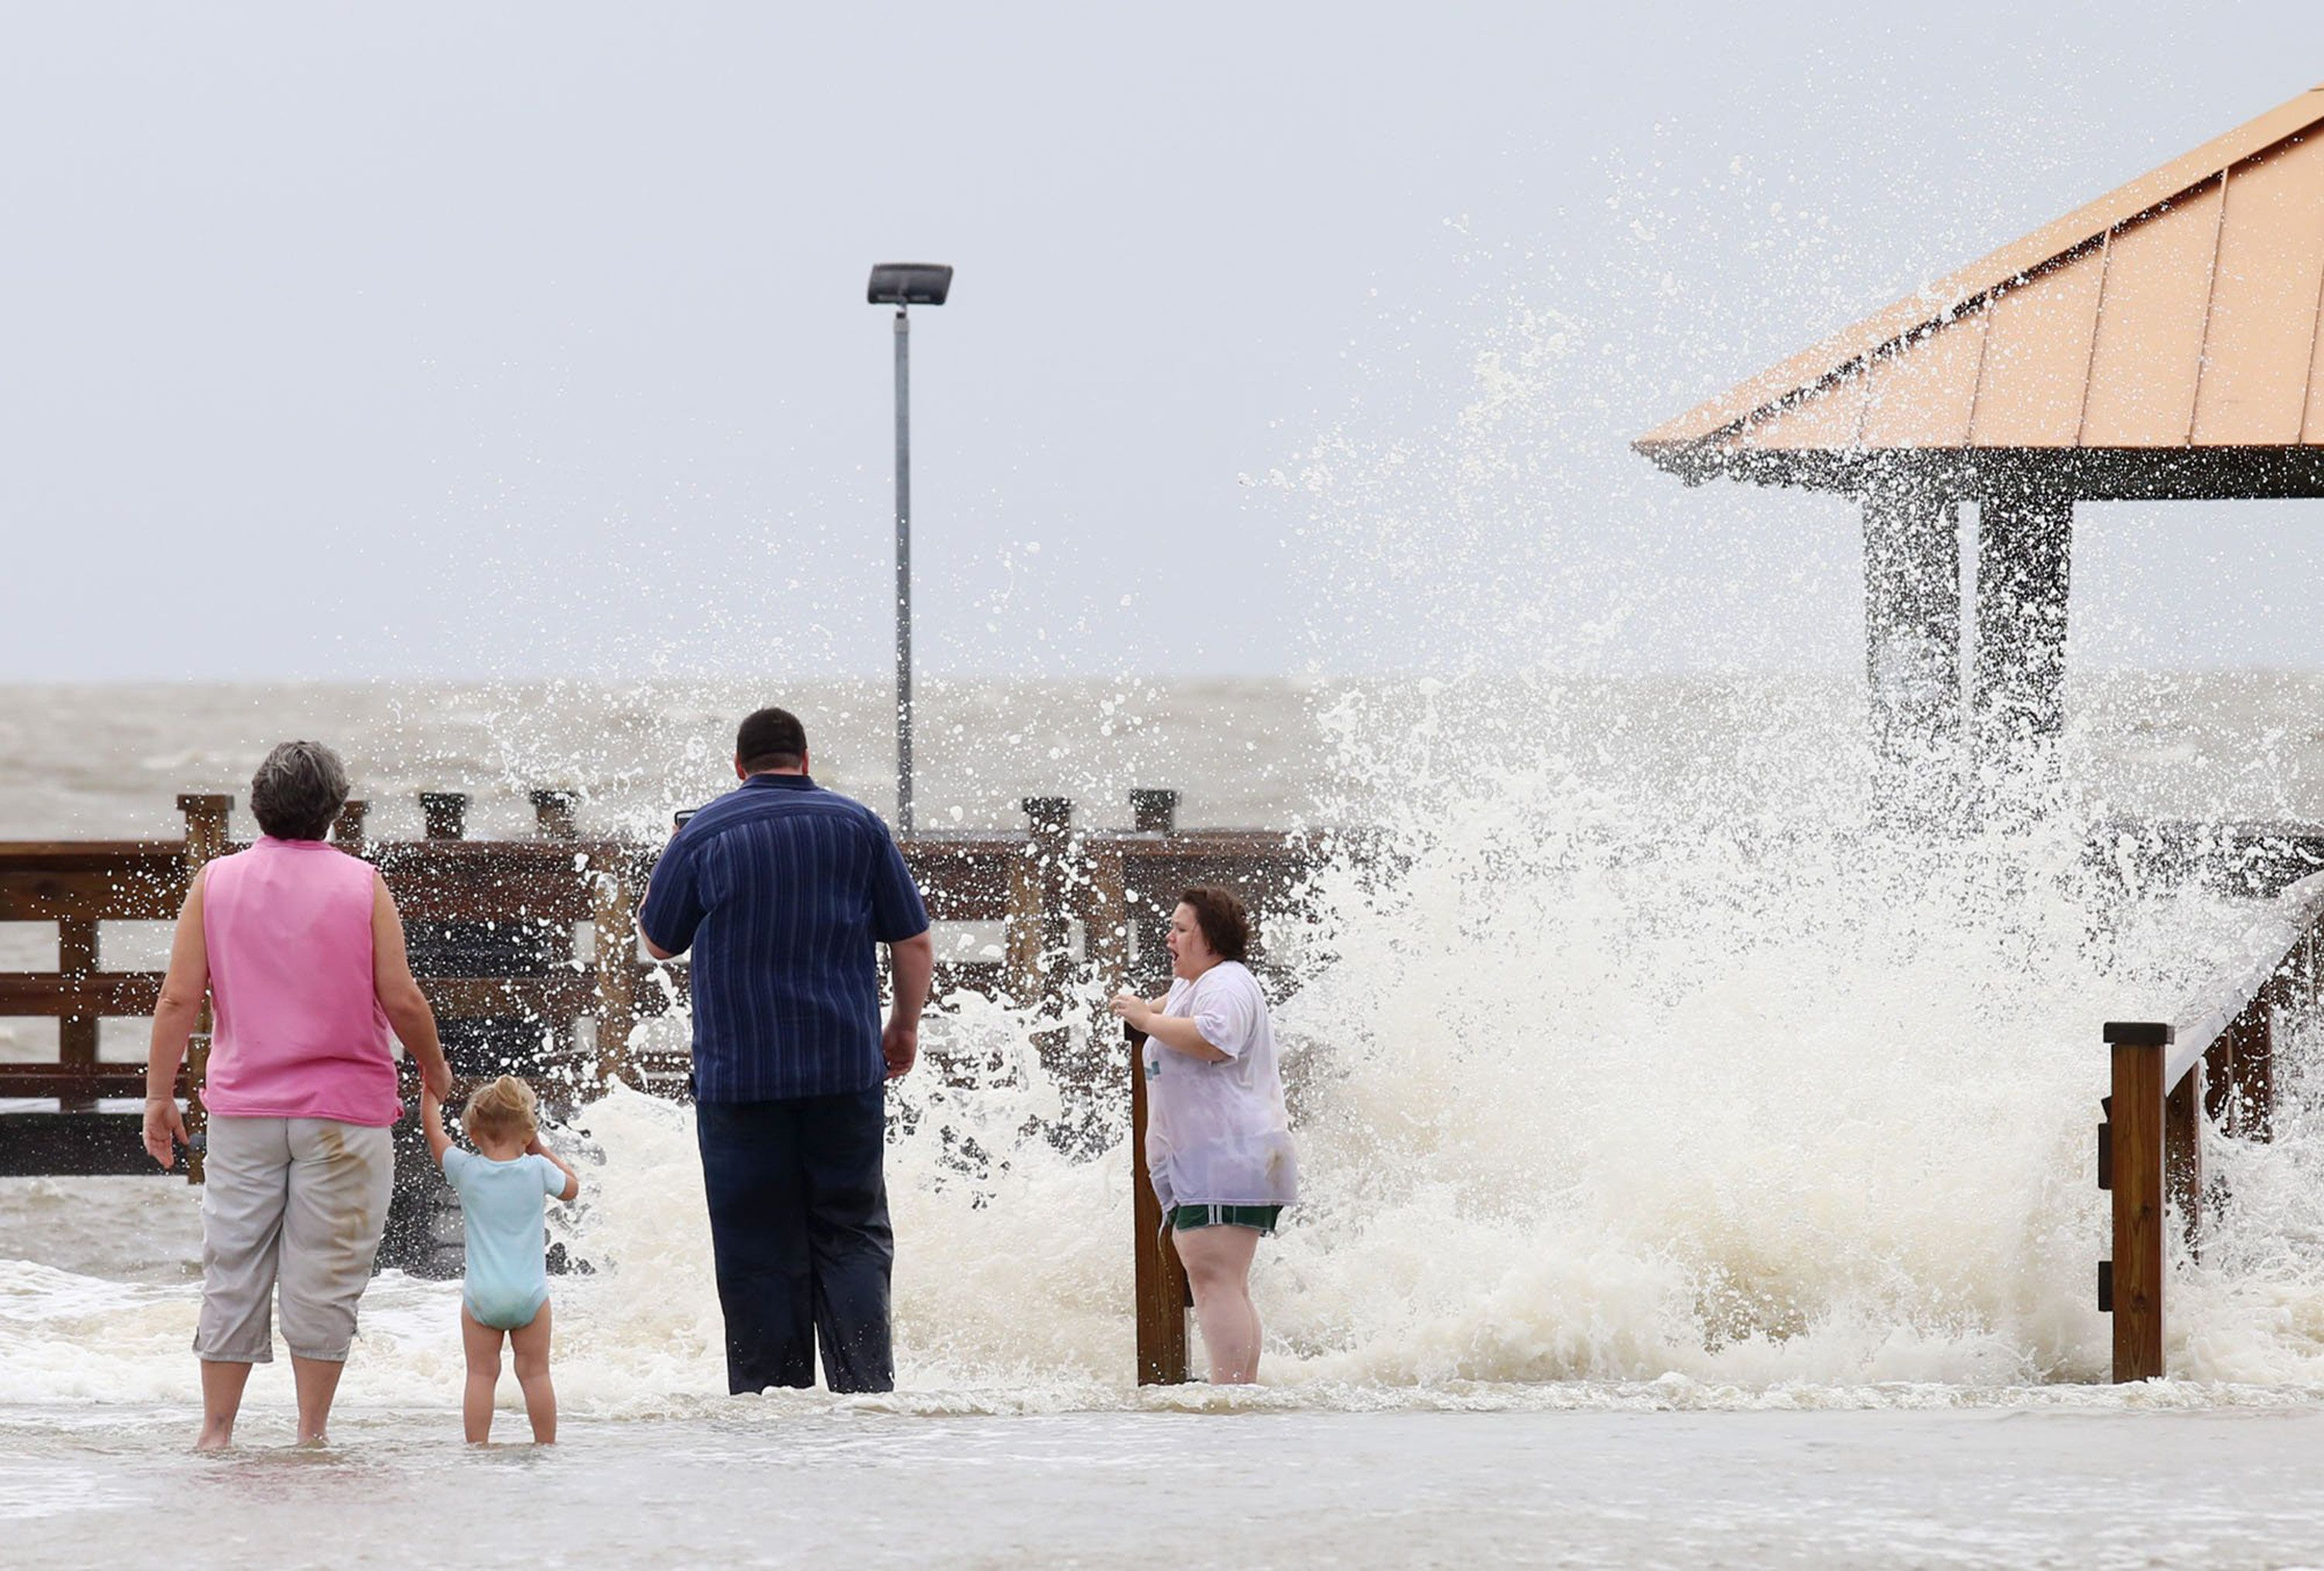 Kathy Majors and her granddaughter, Chloe Schlunaker, 2, and her parents, Justin and Heather Schlunaker of D'Iberville, watch as waves crash against the shore at Moses Pier in Gulfport on Wednesday, June 21, 2017 as Tropical Storm Cindy moved through the area. The family recently moved to the coast from Laurel and wanted to see the storm up close. (John Fitzhugh/Biloxi Sun Herald/TNS via Getty Images)